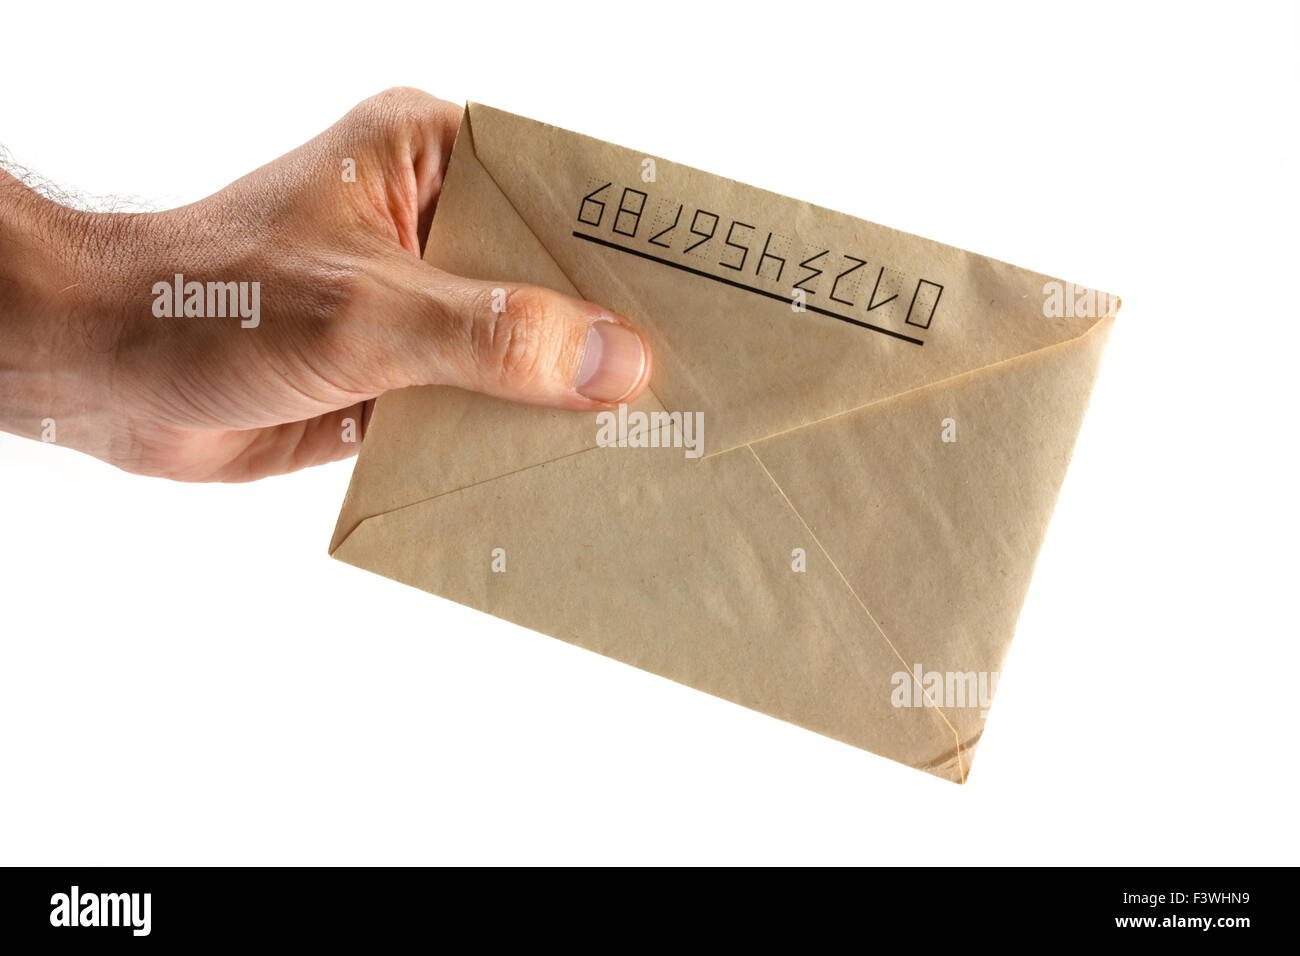 Receive email - Stock Image